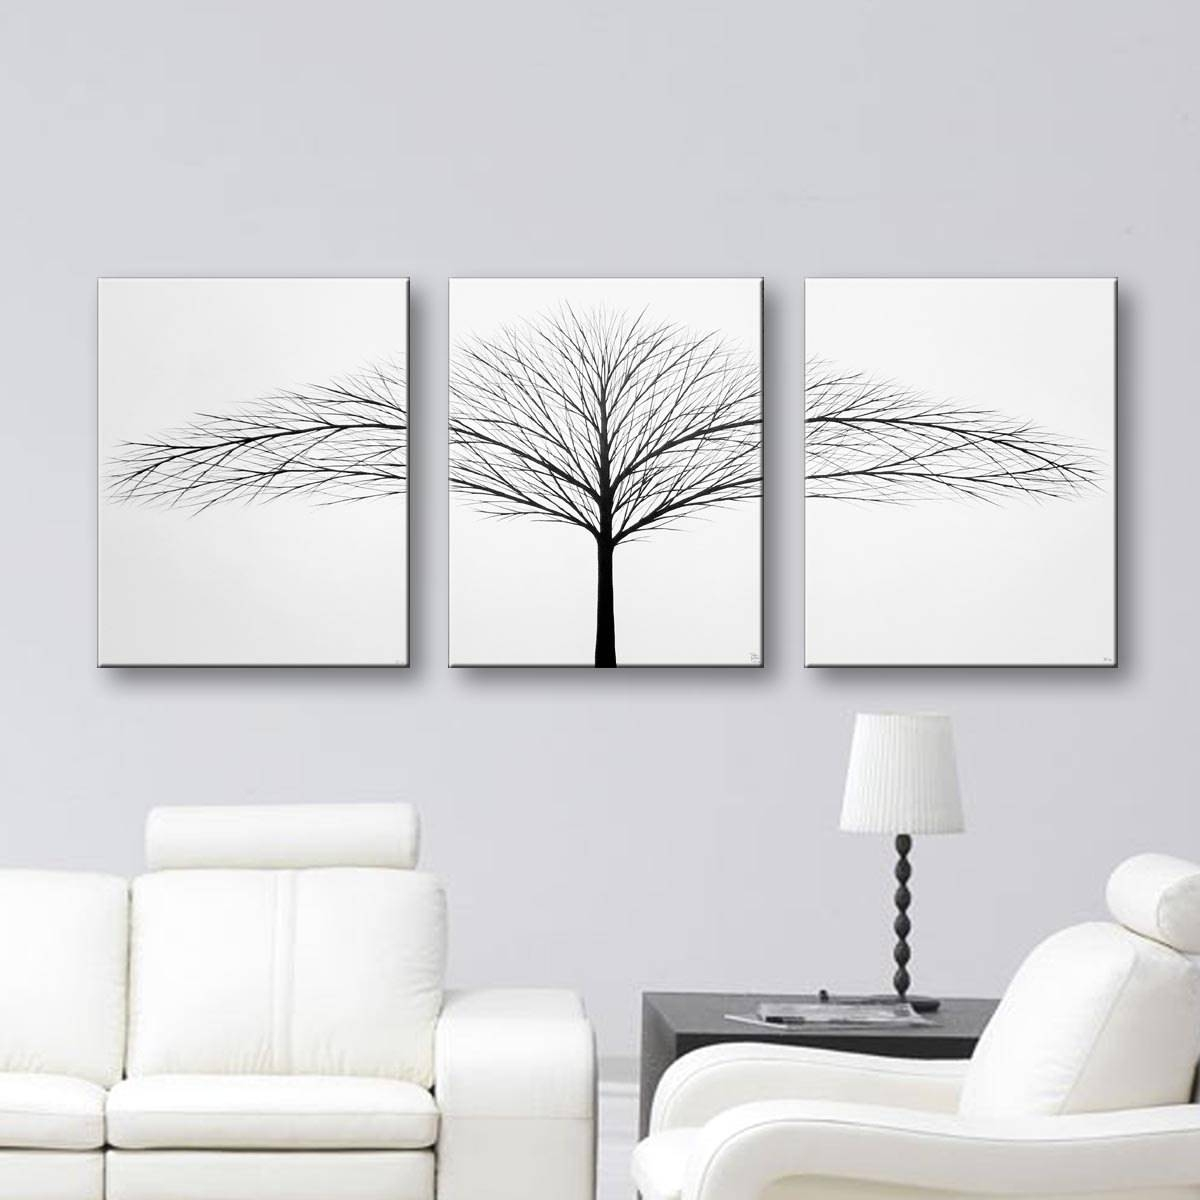 Bedroom wall decor 3 piece wall art canvas art minimalist in latest large black and white